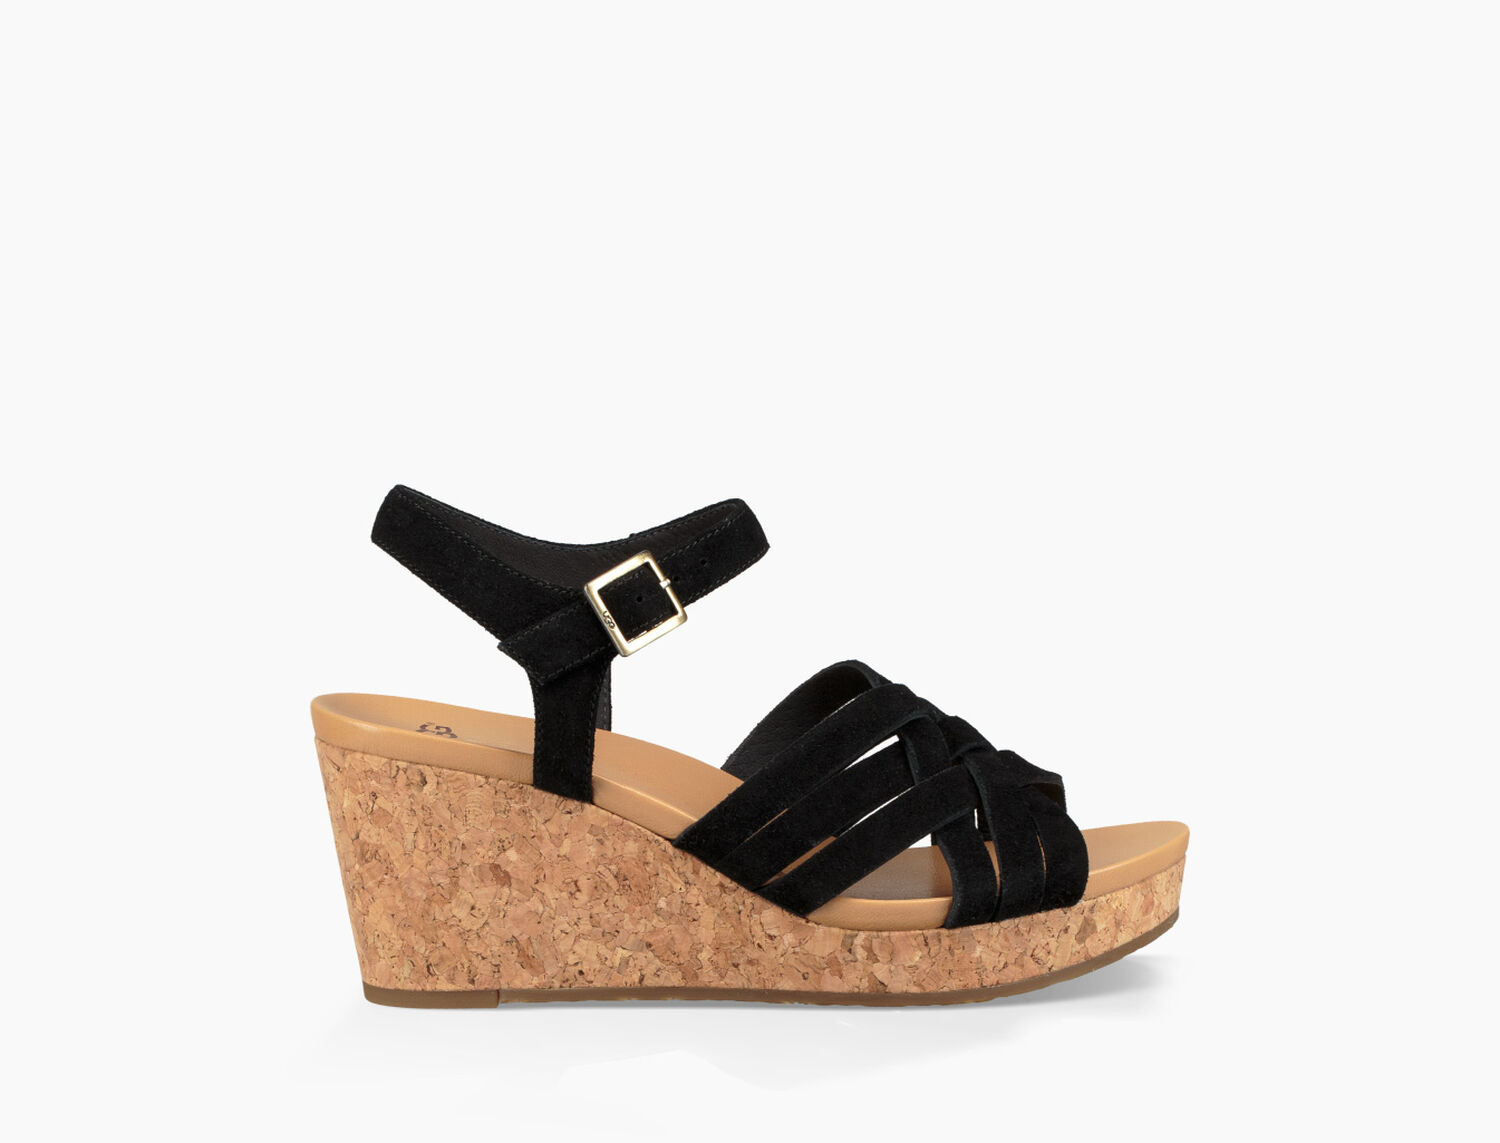 31a41d99650 Women's Share this product Uma Wedge